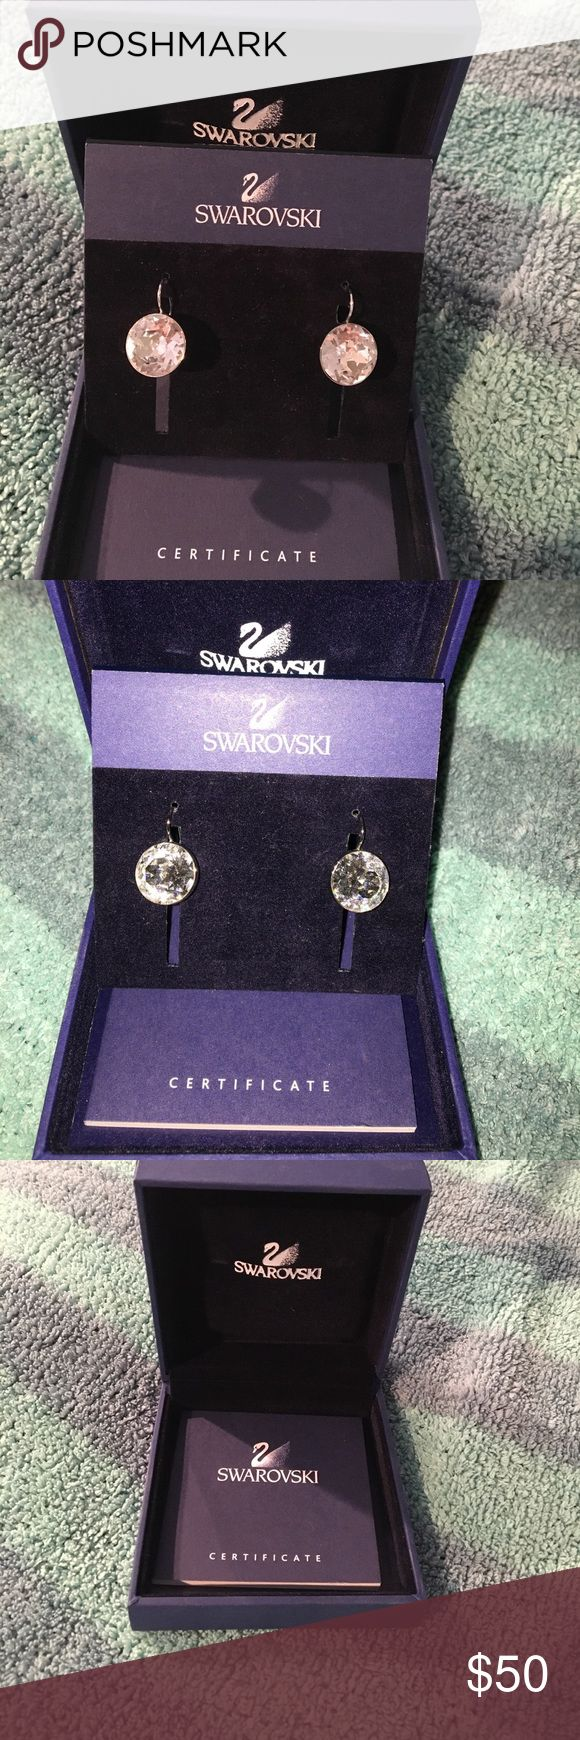 Swarovski Bella earrings Brand new in box This is a pair of very special earrings that can be worn on any occasion. Be it a casual glamorous look or a cool chic one, this set of rhodium-plated pierced earrings with bezel-set, faceted crystal are ideal. Swarovski Jewelry Earrings